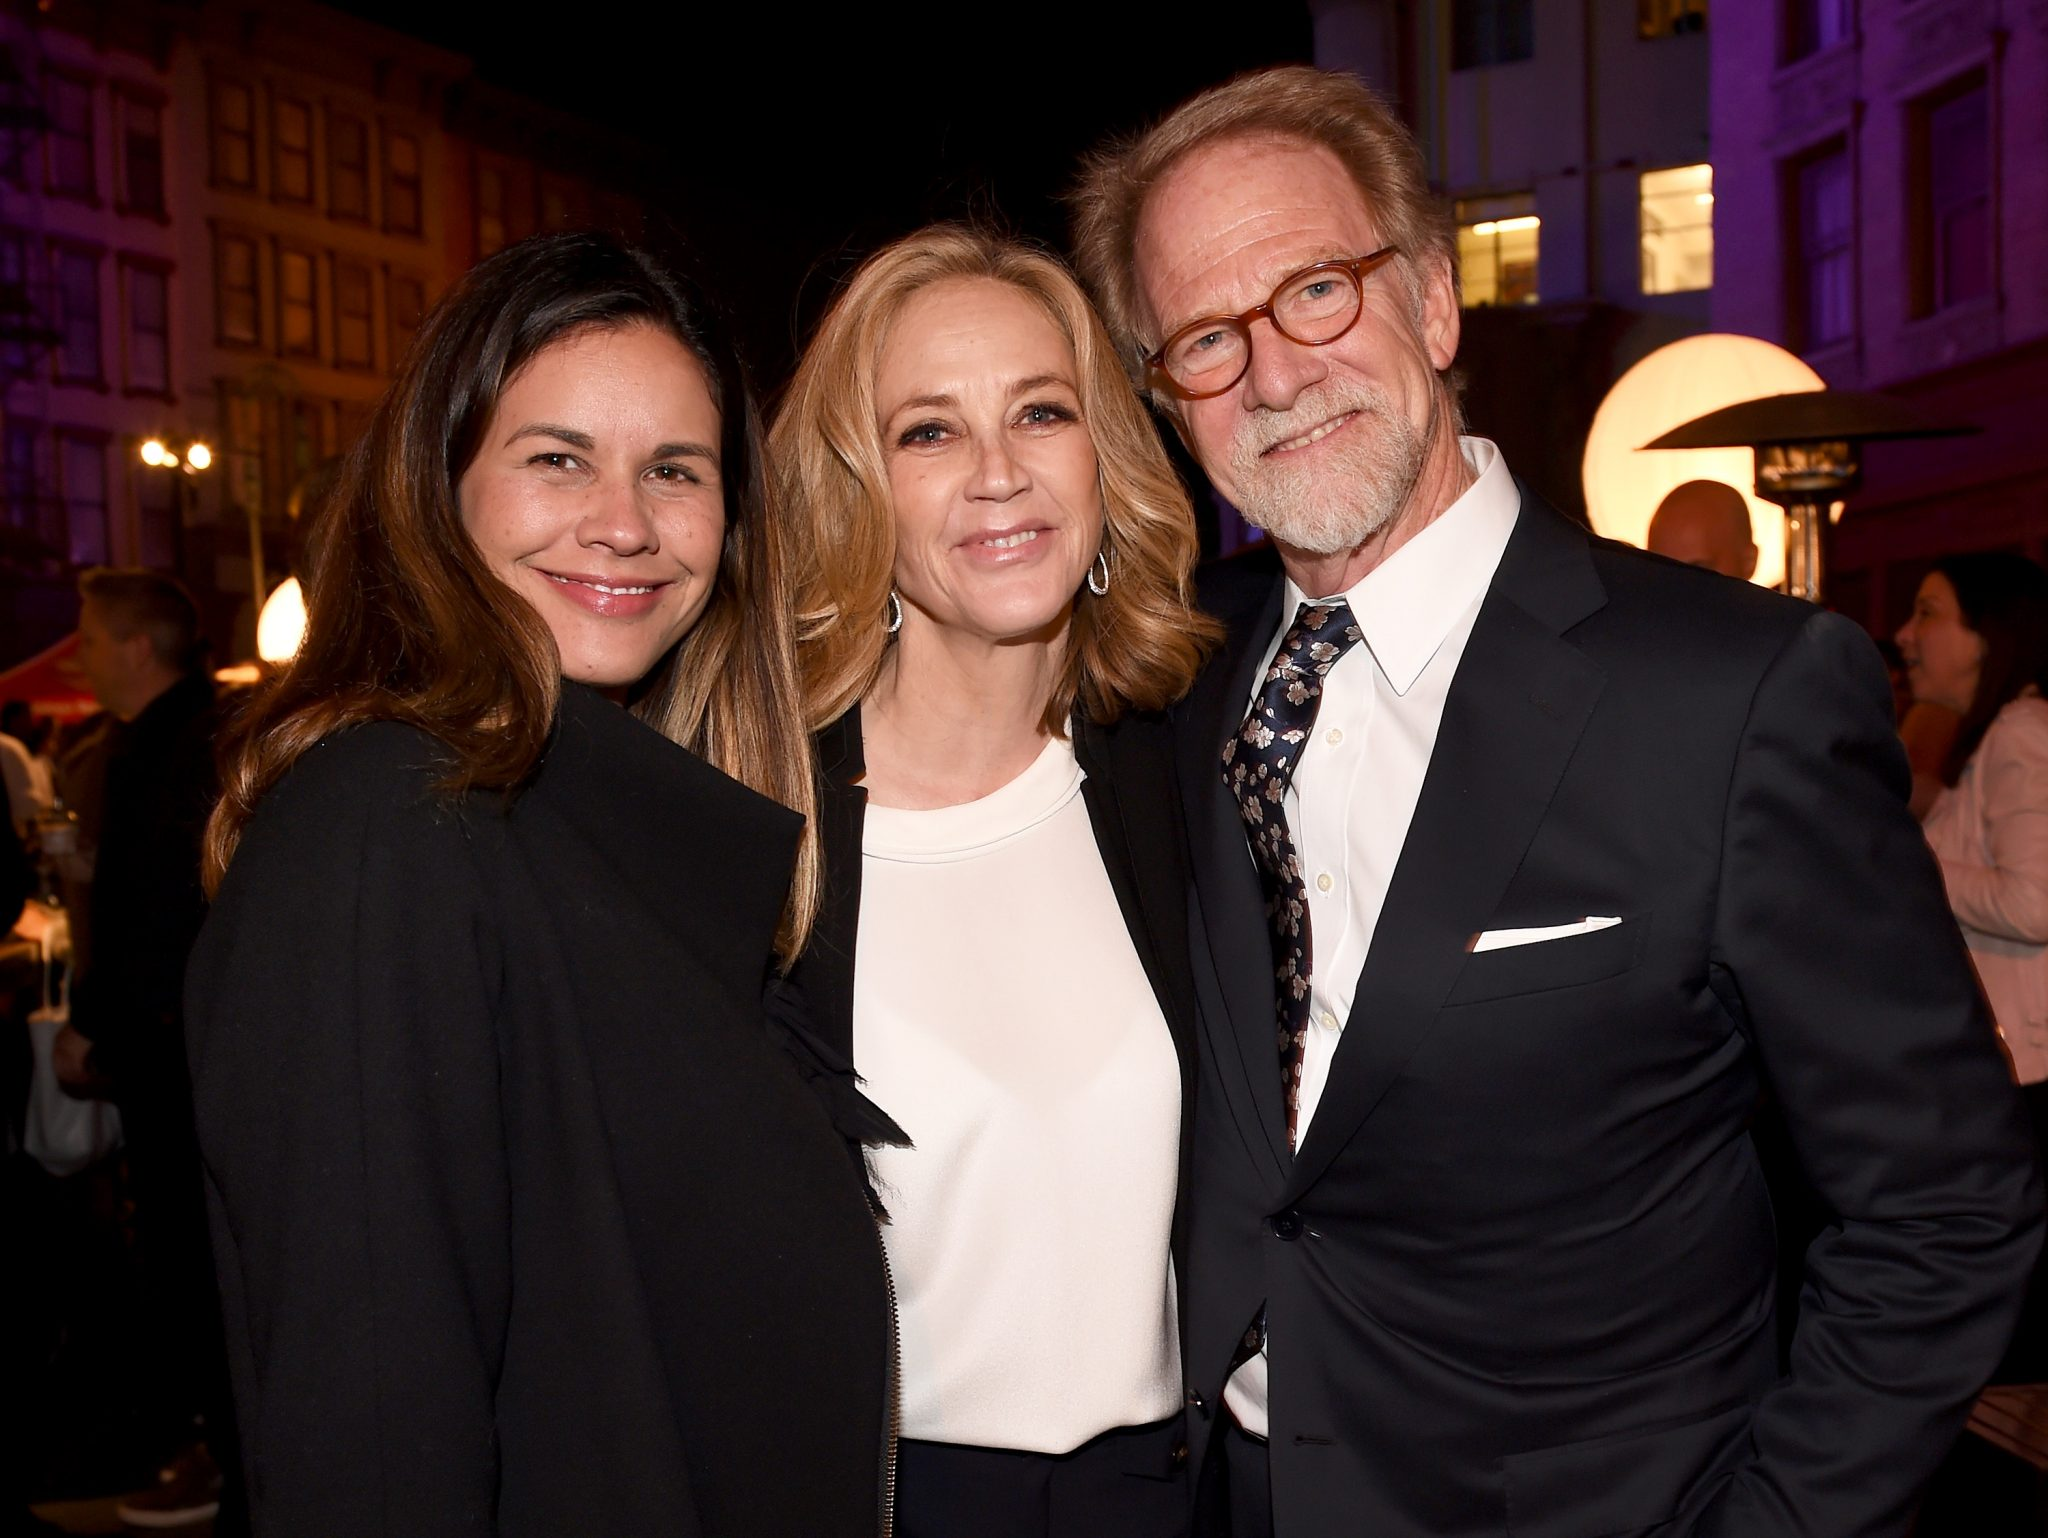 (L-R) Naomi Scott & Ally Walker (Ghosted); and 20th Century Fox Television Distribution president Mark Kaner attend the Twentieth Century Fox Television Los Angeles Screening Gala at the Fox Studio lot on May 25, 2017 (Photo by Frank Micelotta/Fox/PictureGroup)